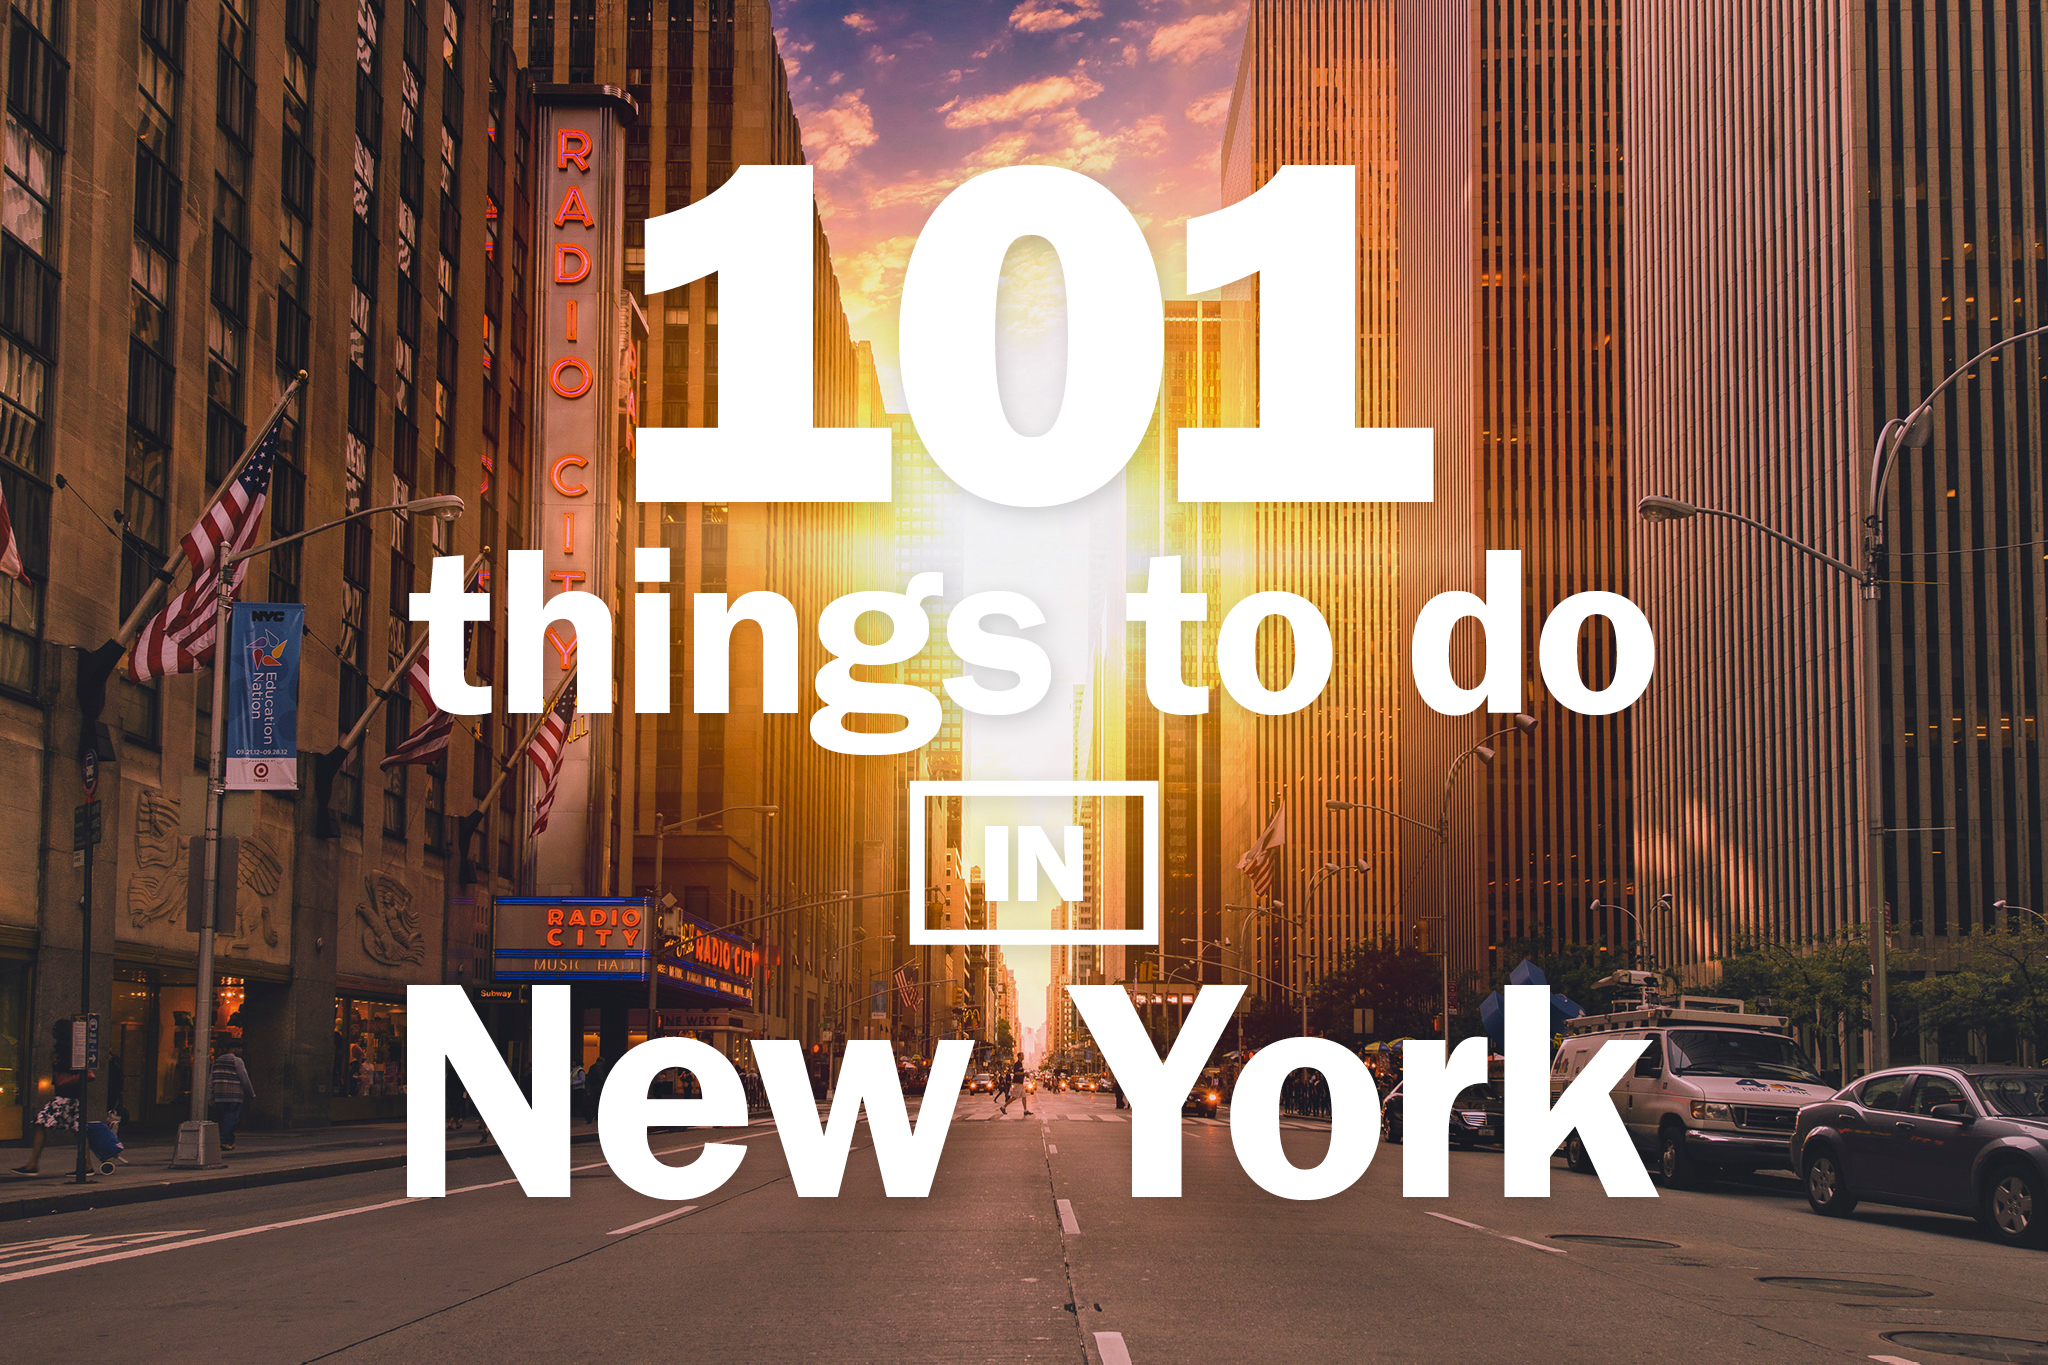 New York Special Things To Do Of Nyc Events Calendar For 2018 With Essential Events And